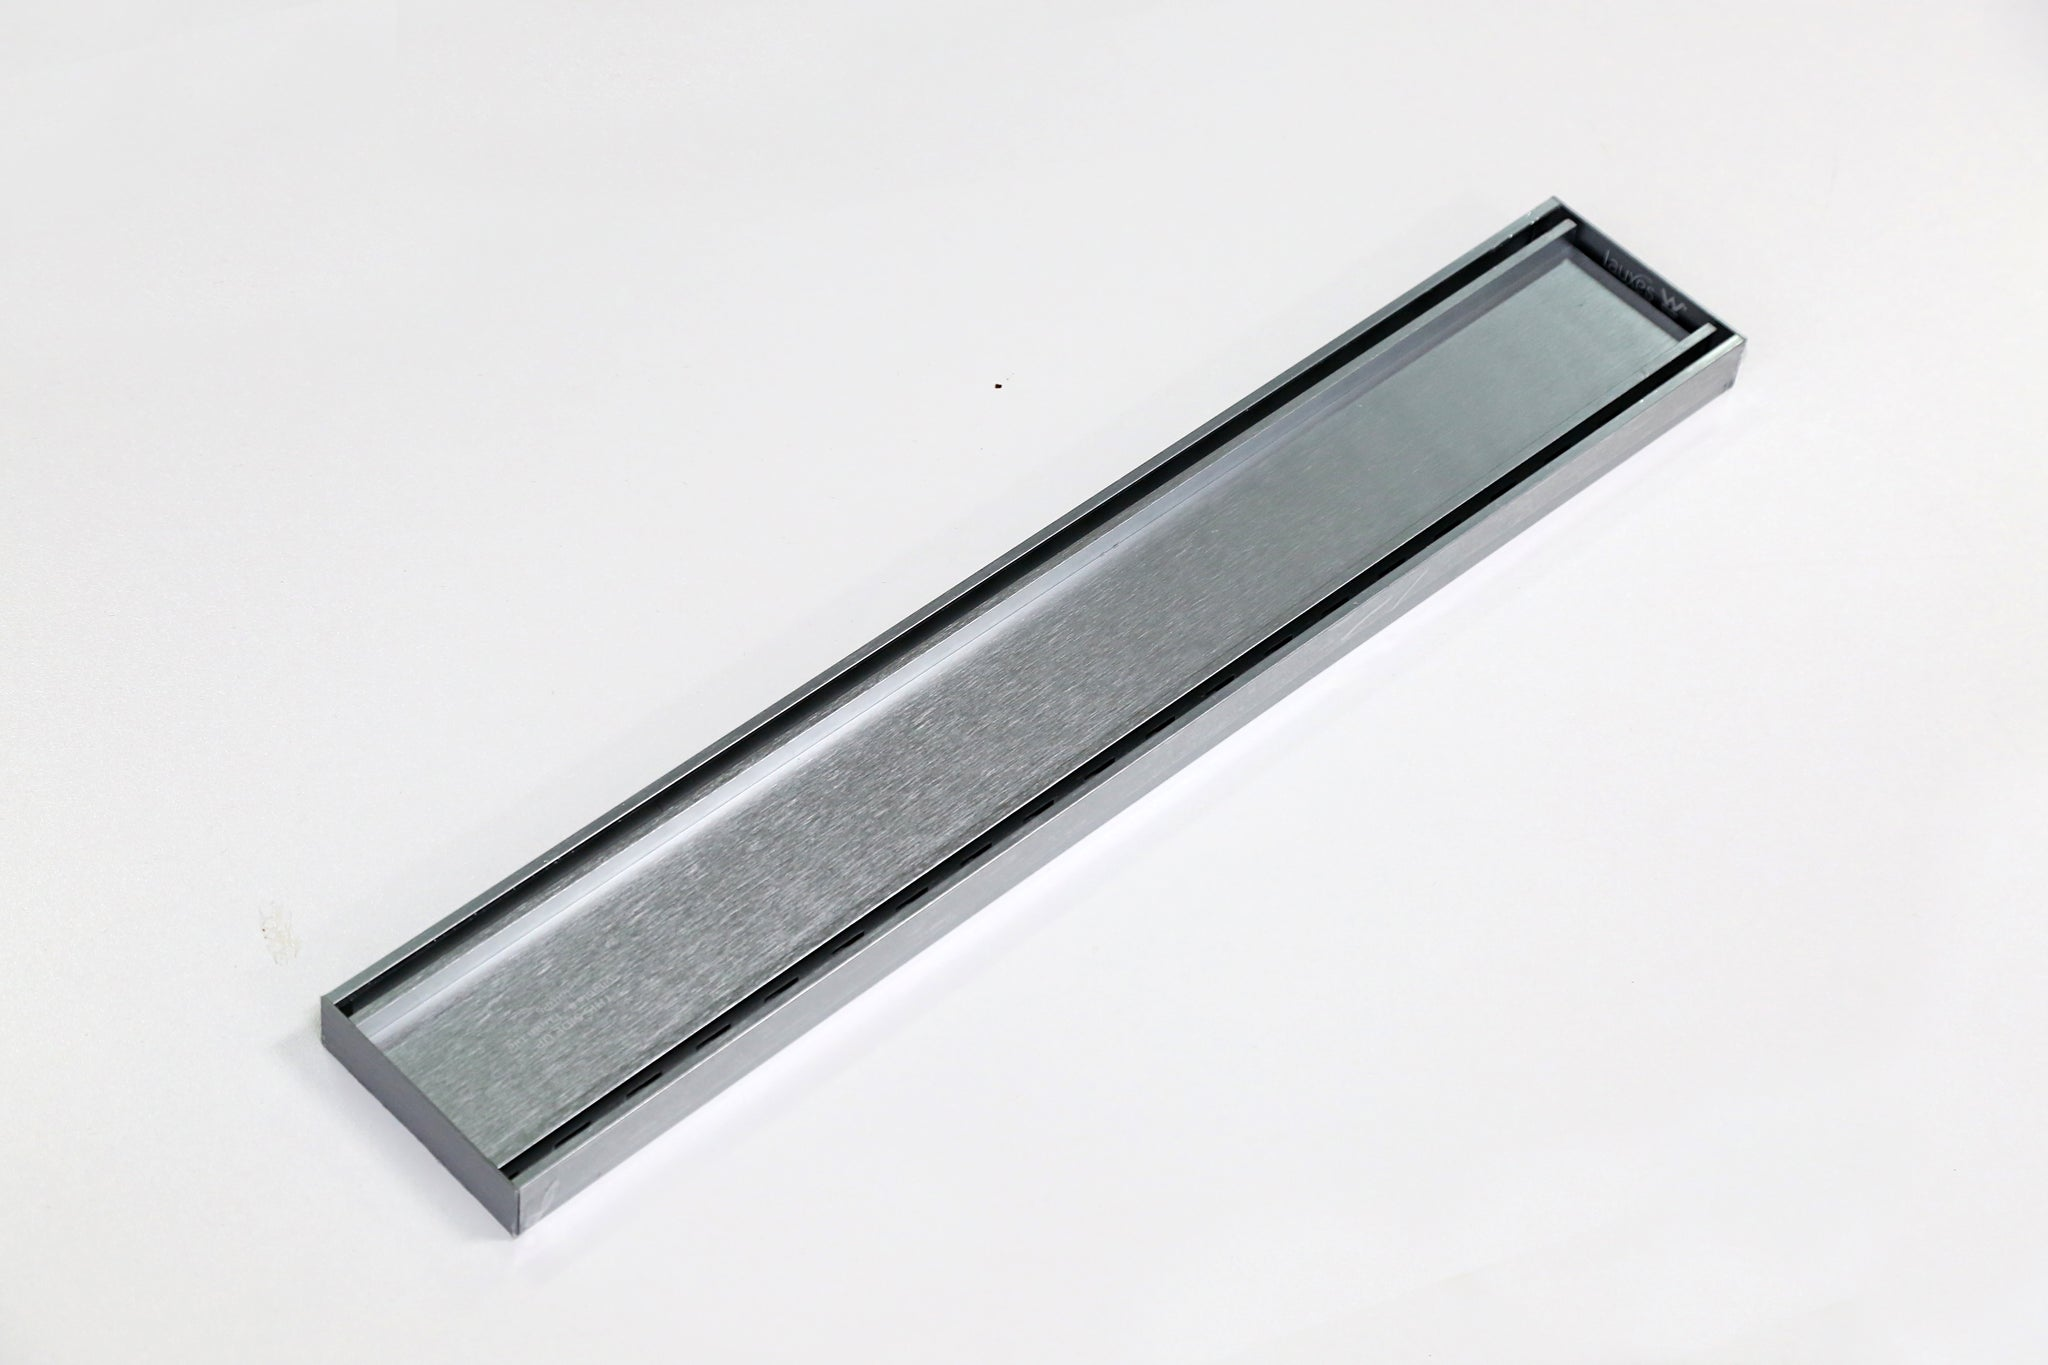 LAUXES LINEAR GRATE 700MM SILVER